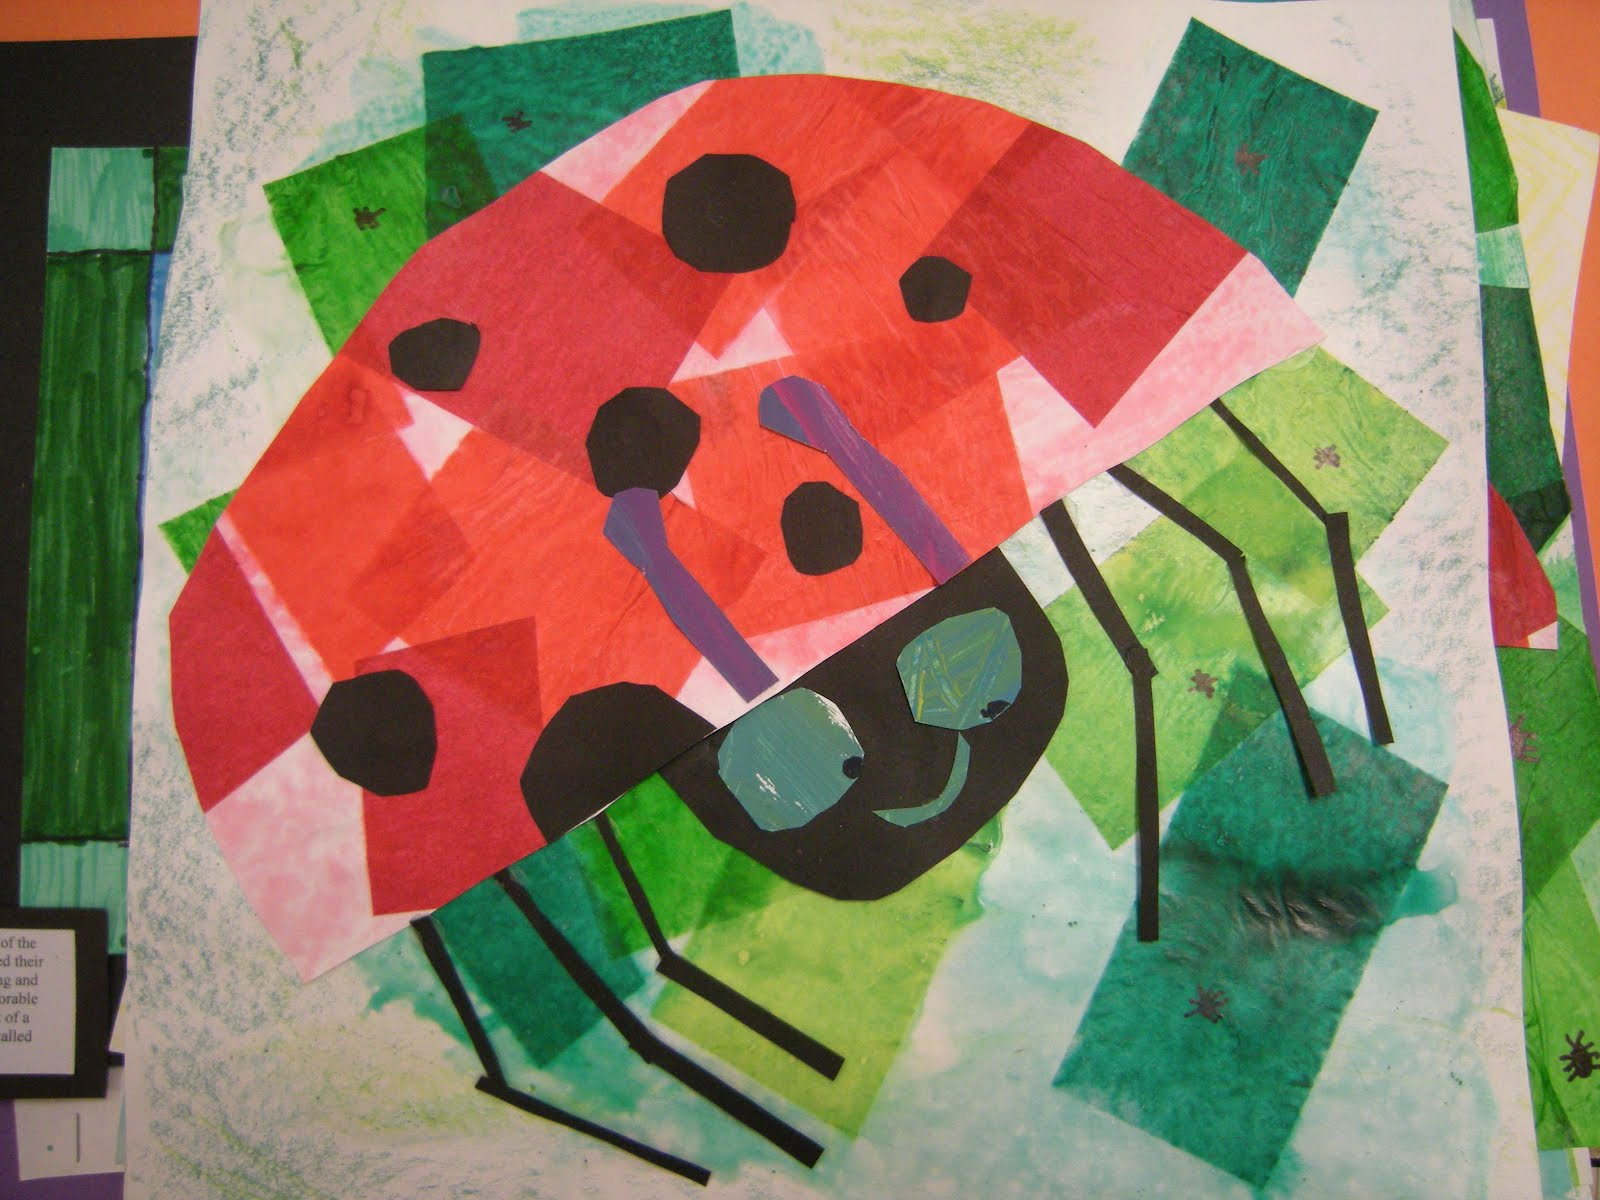 In art class, we read the story The Grouchy Ladybug by Eric Carle.